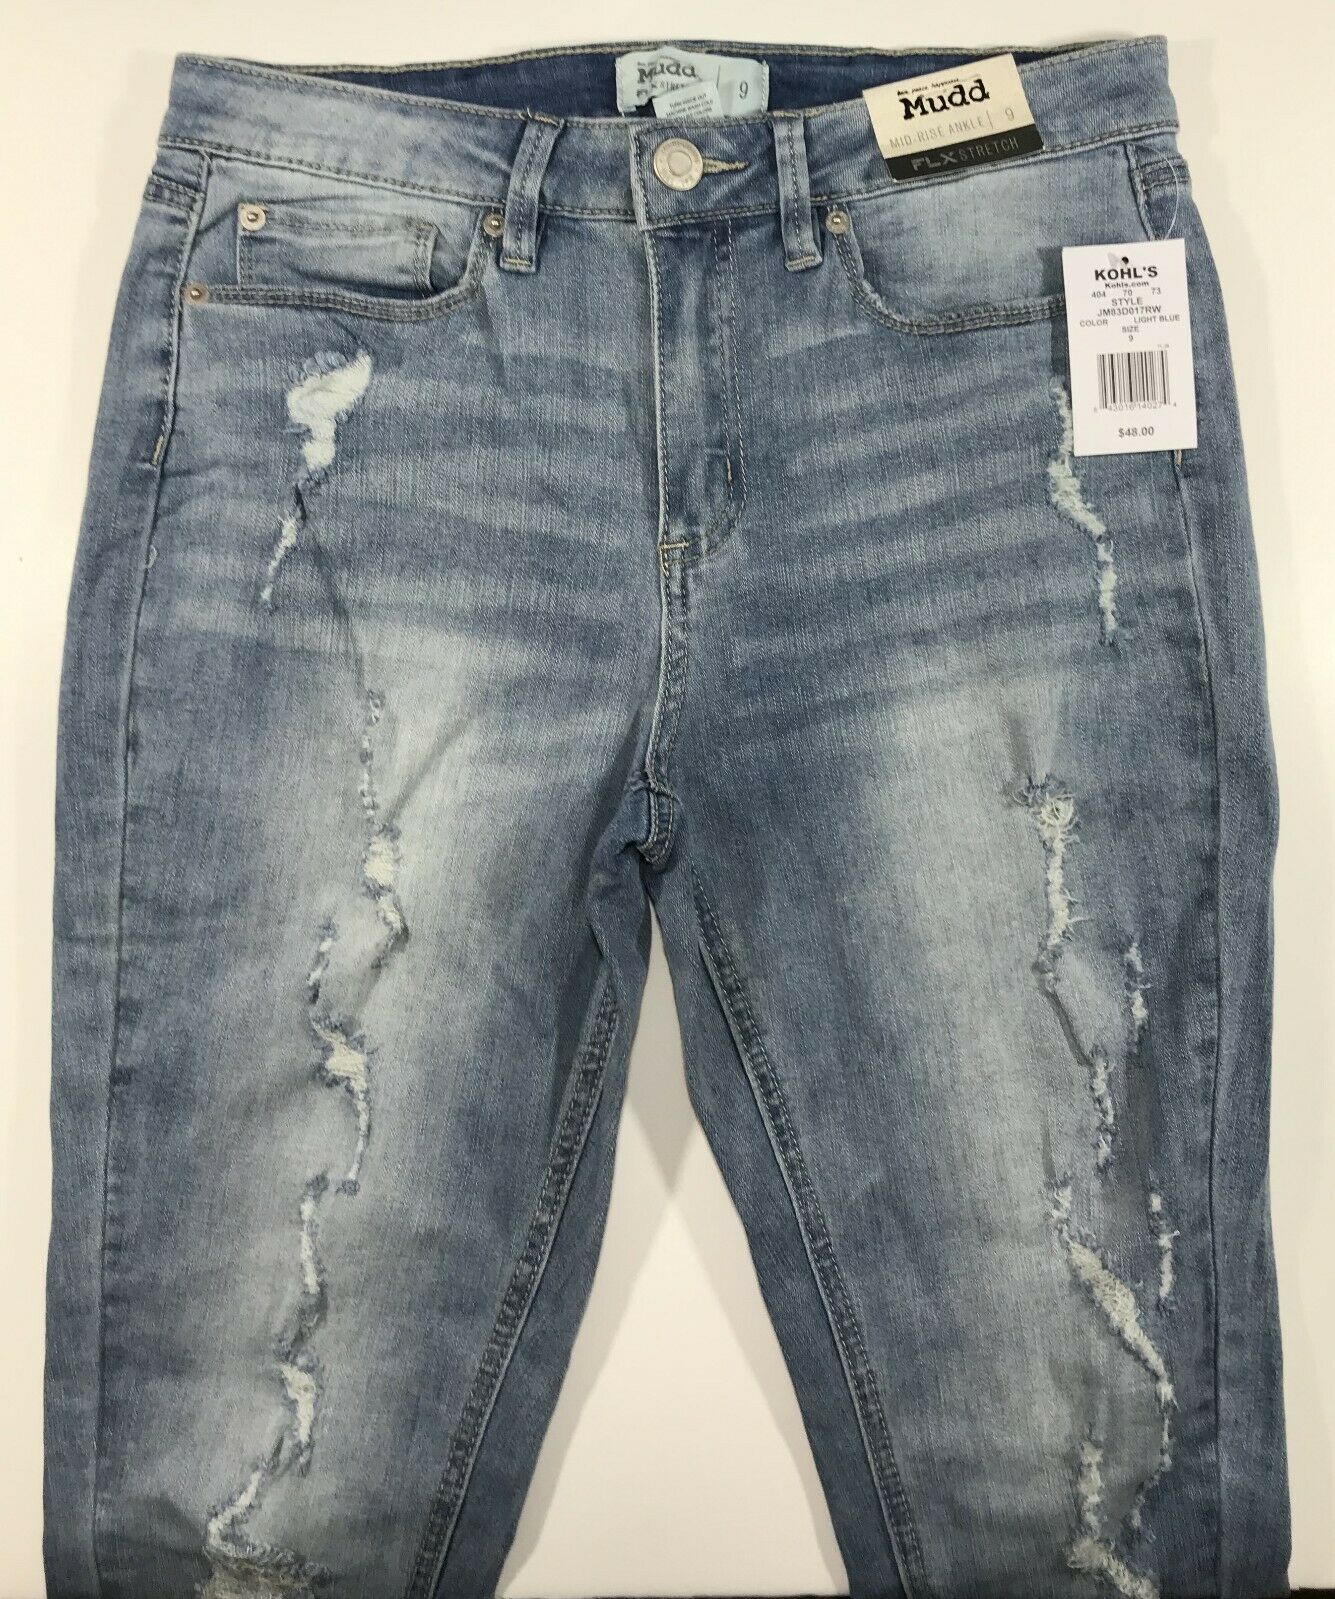 Mudd Mid-Rise Ankle Flex Stretch Jeans for Women 9 bluee NWT 52% Cotton Destroyed